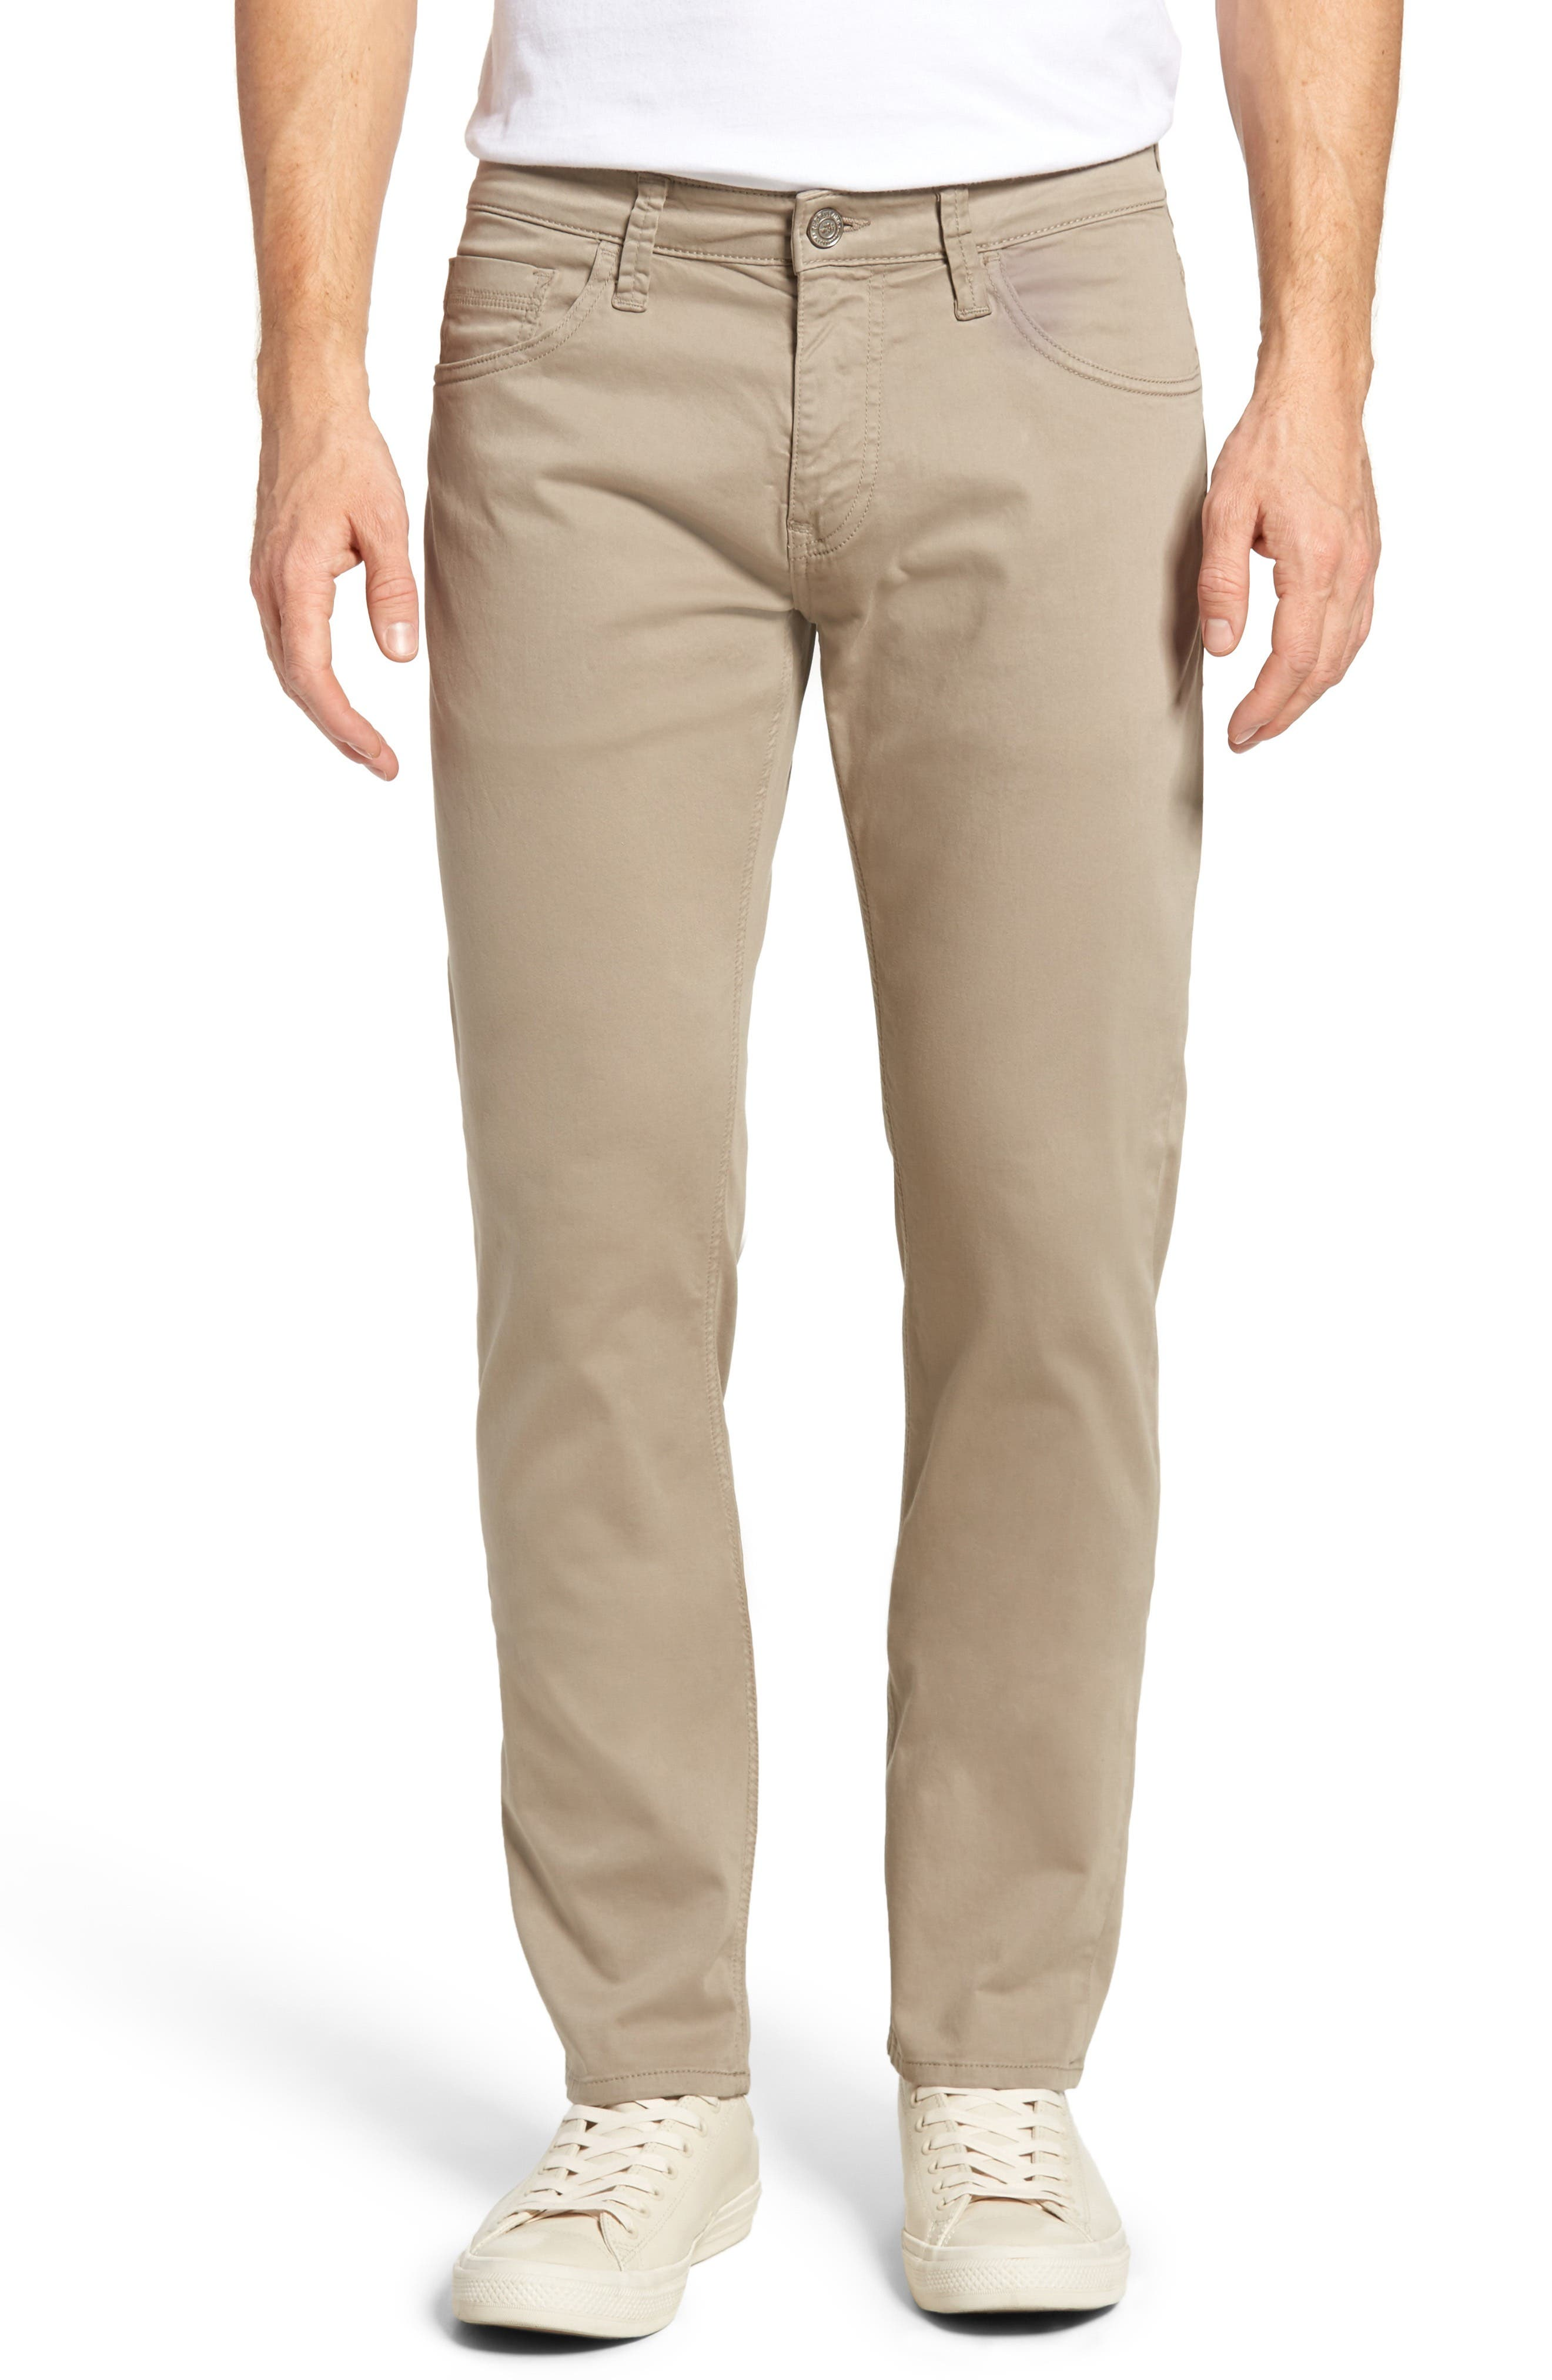 Zach Straight Leg Twill Pants,                             Main thumbnail 1, color,                             BEIGE TWILL